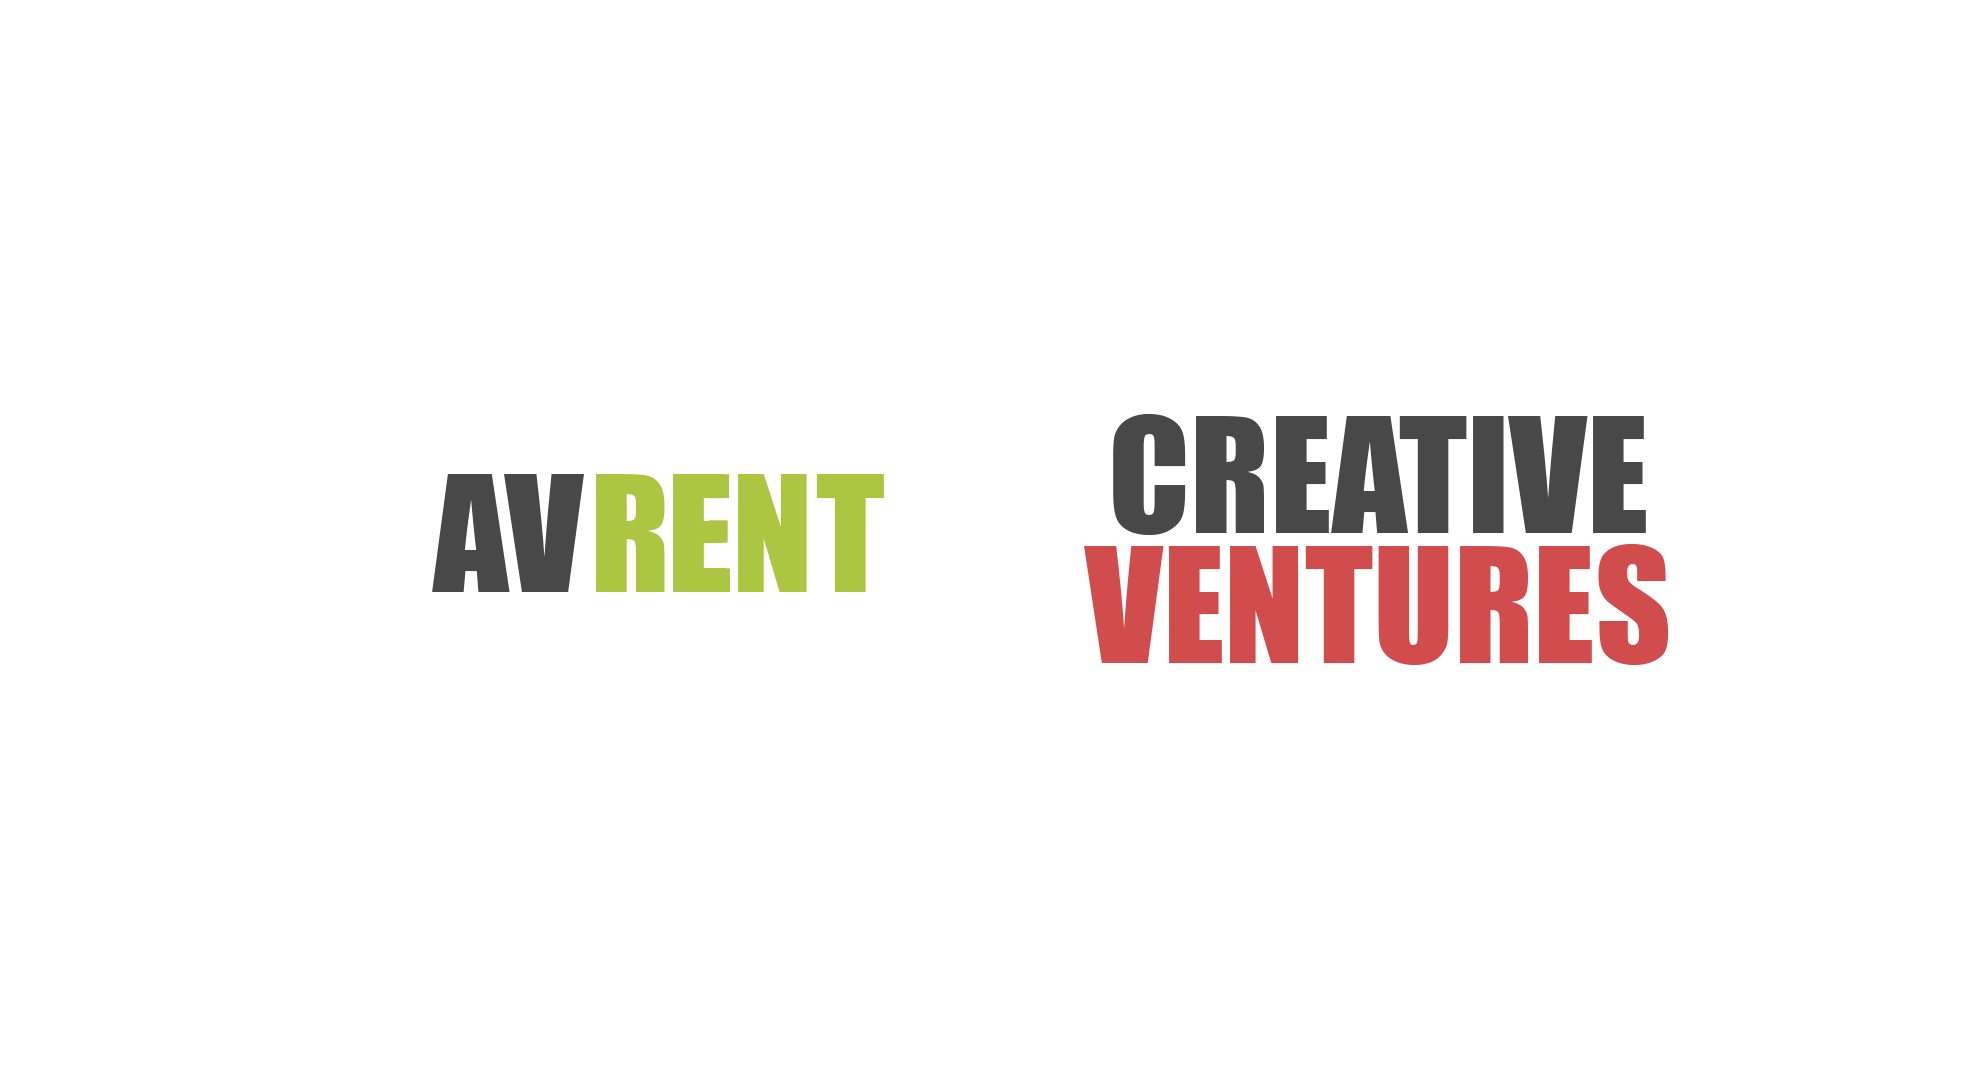 Avrent en Creative ventures Logo